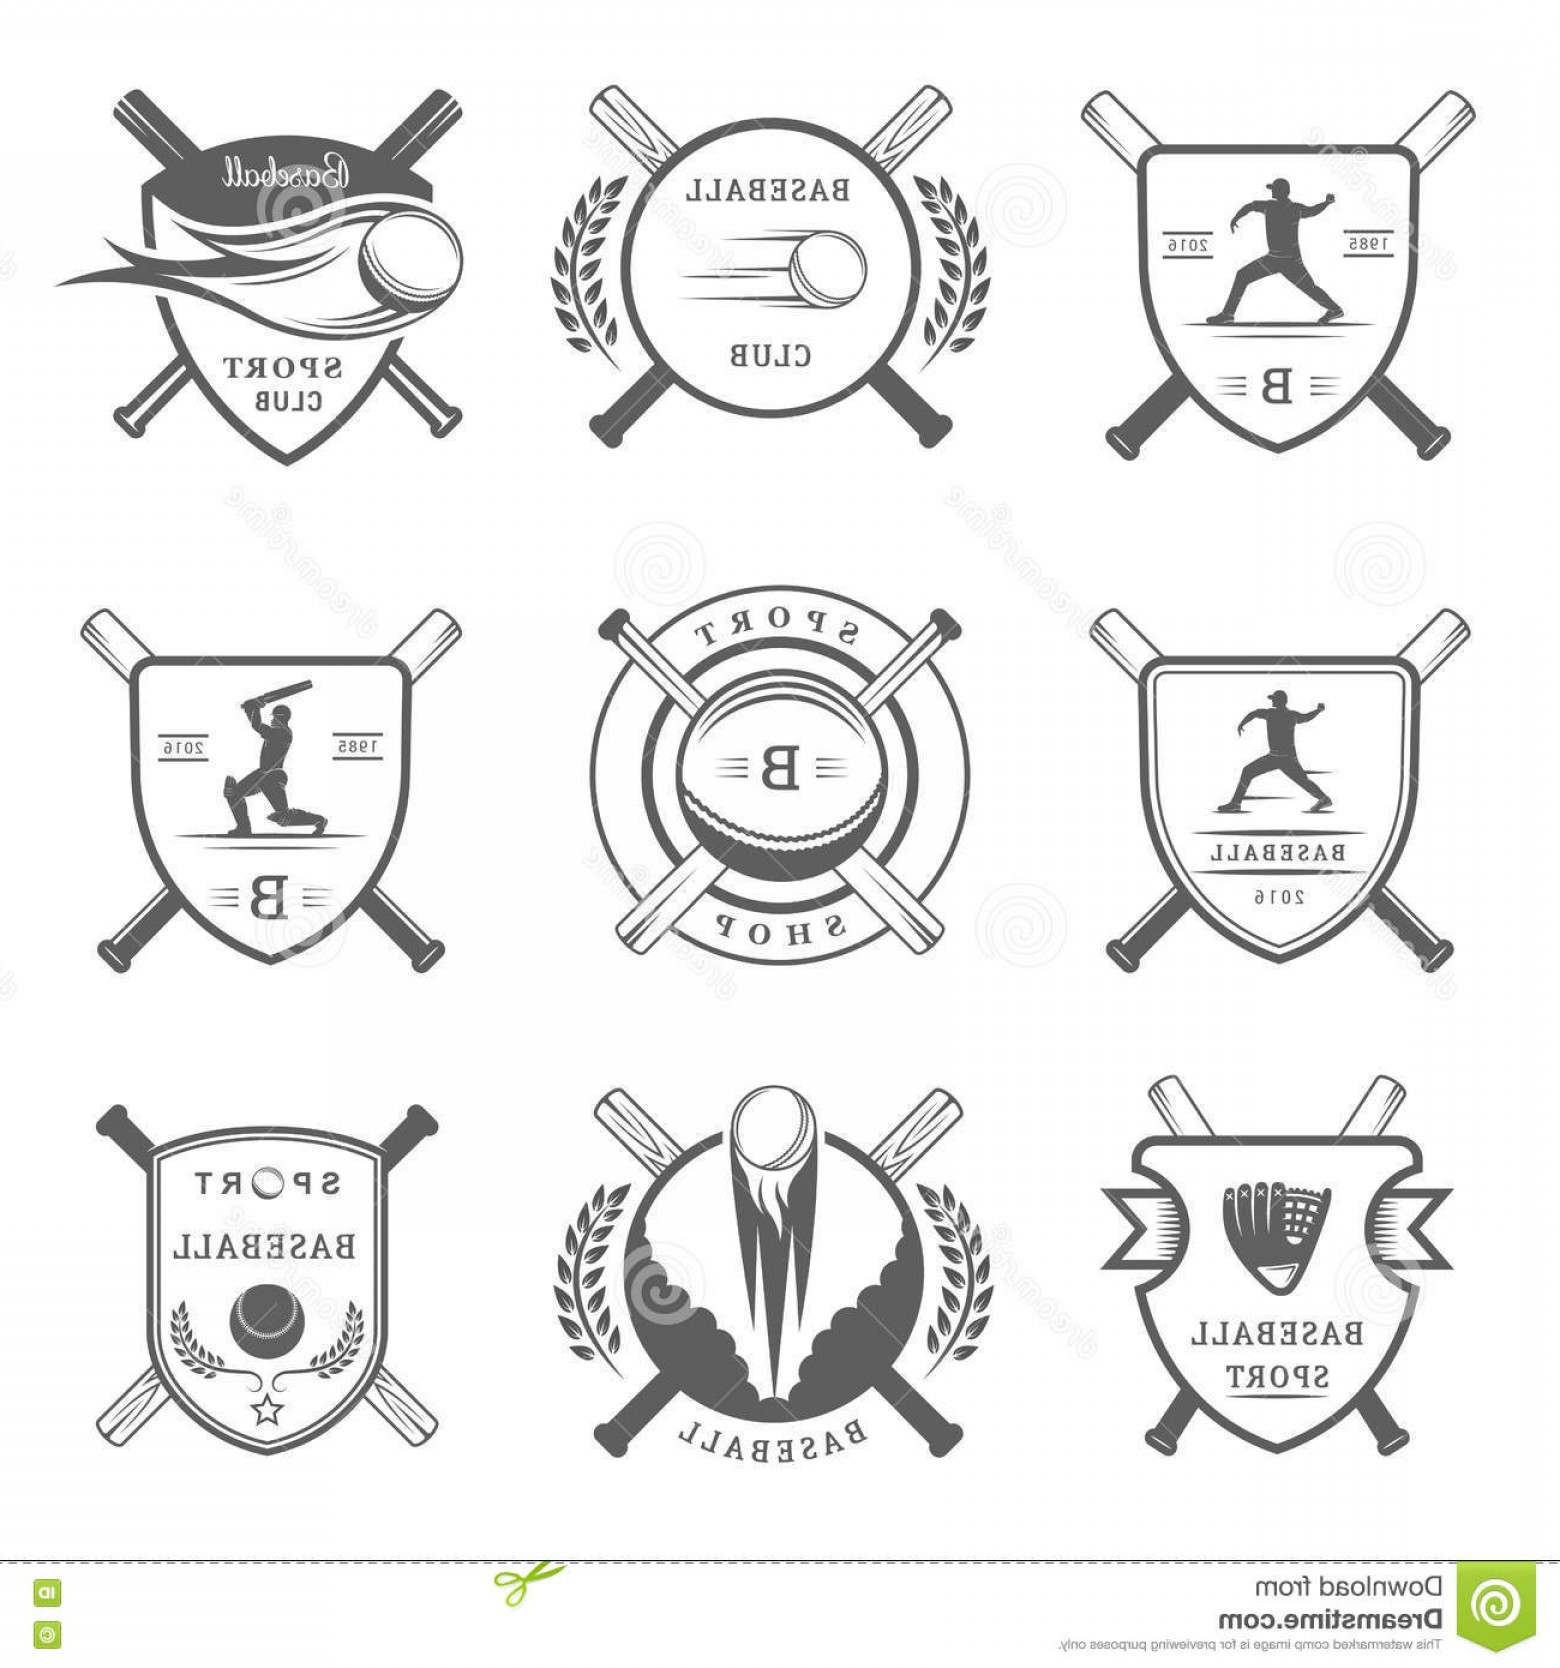 Vector Baseball Cross: Stock Illustration Set Vector Logo Badges Baseball Vintage Labels Sign Icons Outfit Collection Club Emblem Design Elements Image